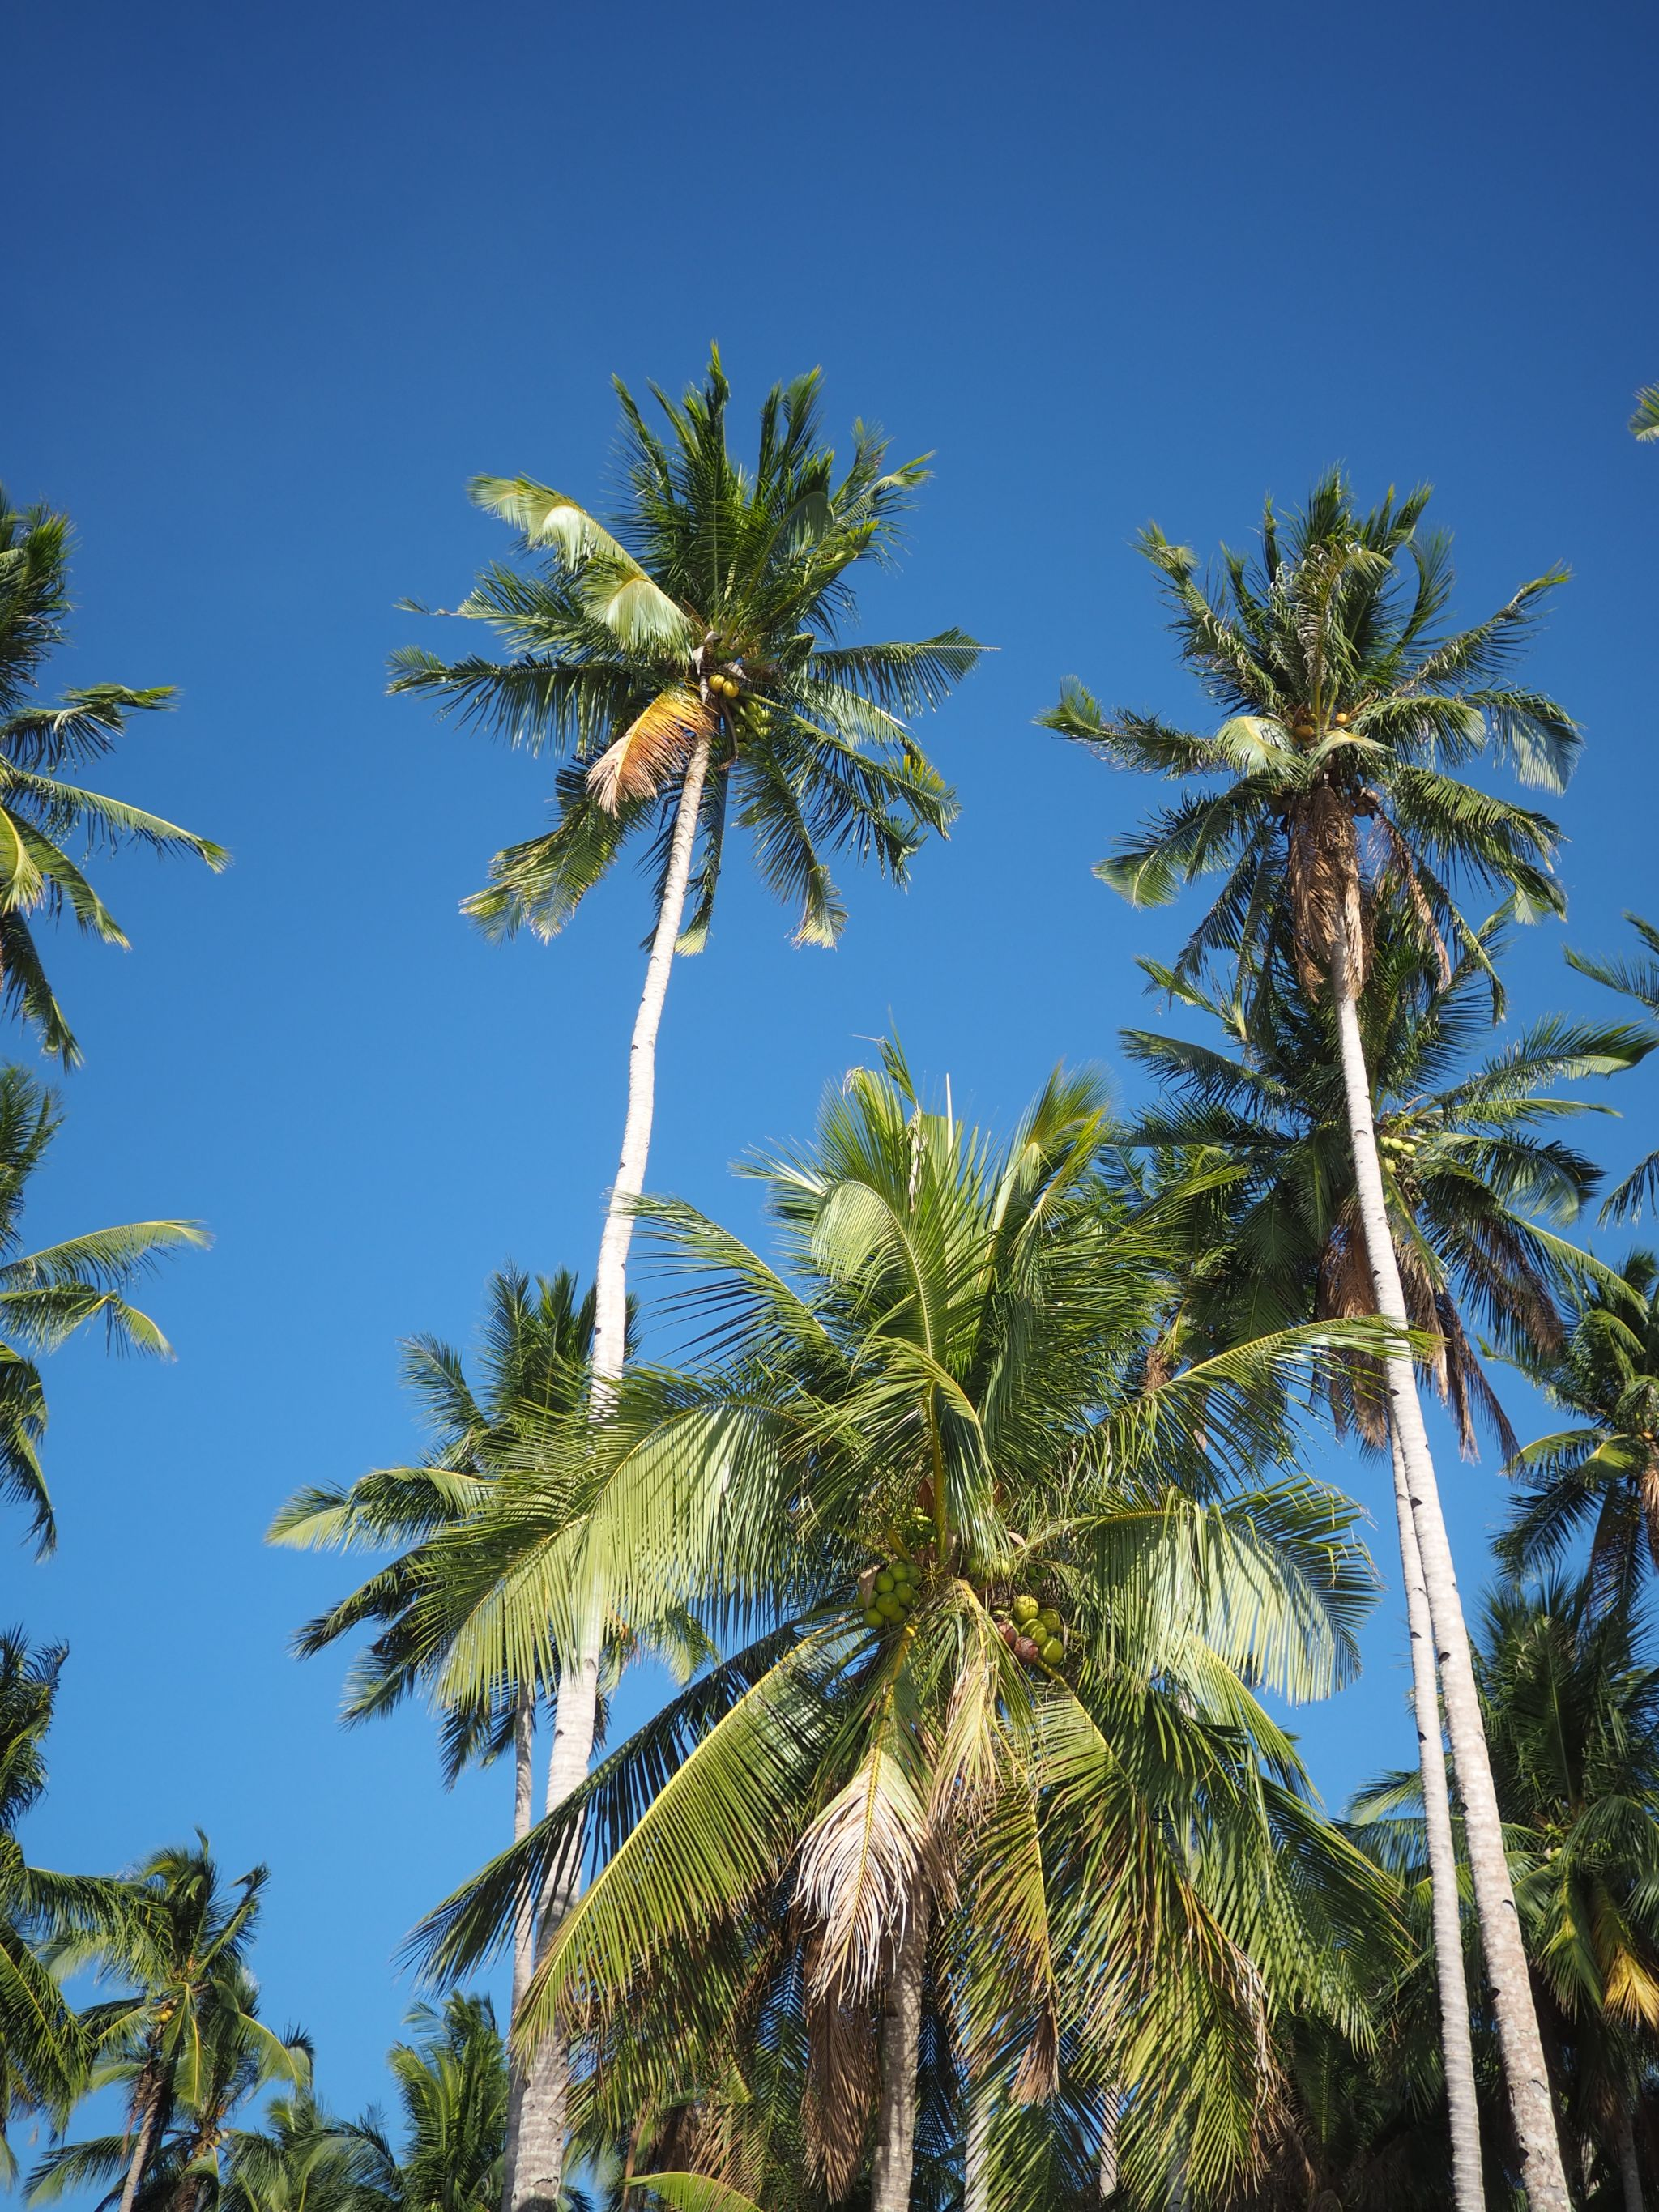 Philippines palm trees